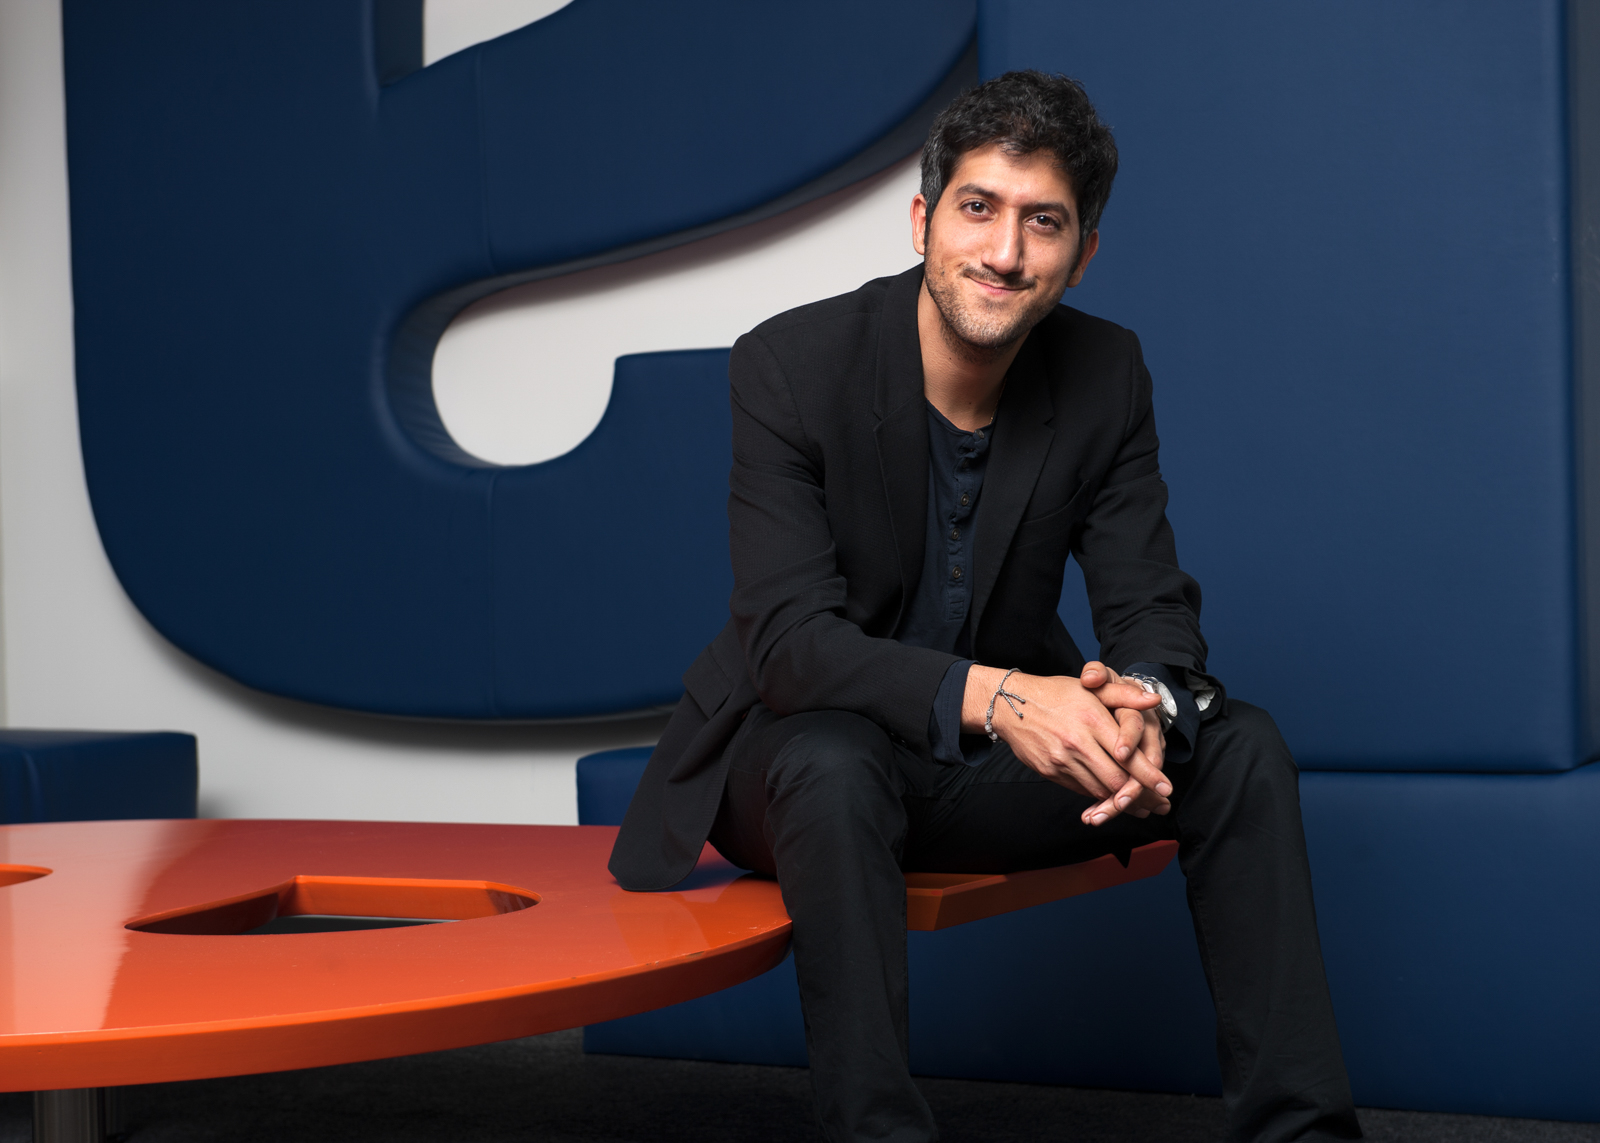 Color portrait of Adam Singolda, CEO and Founder of Taboola Inc in New York City